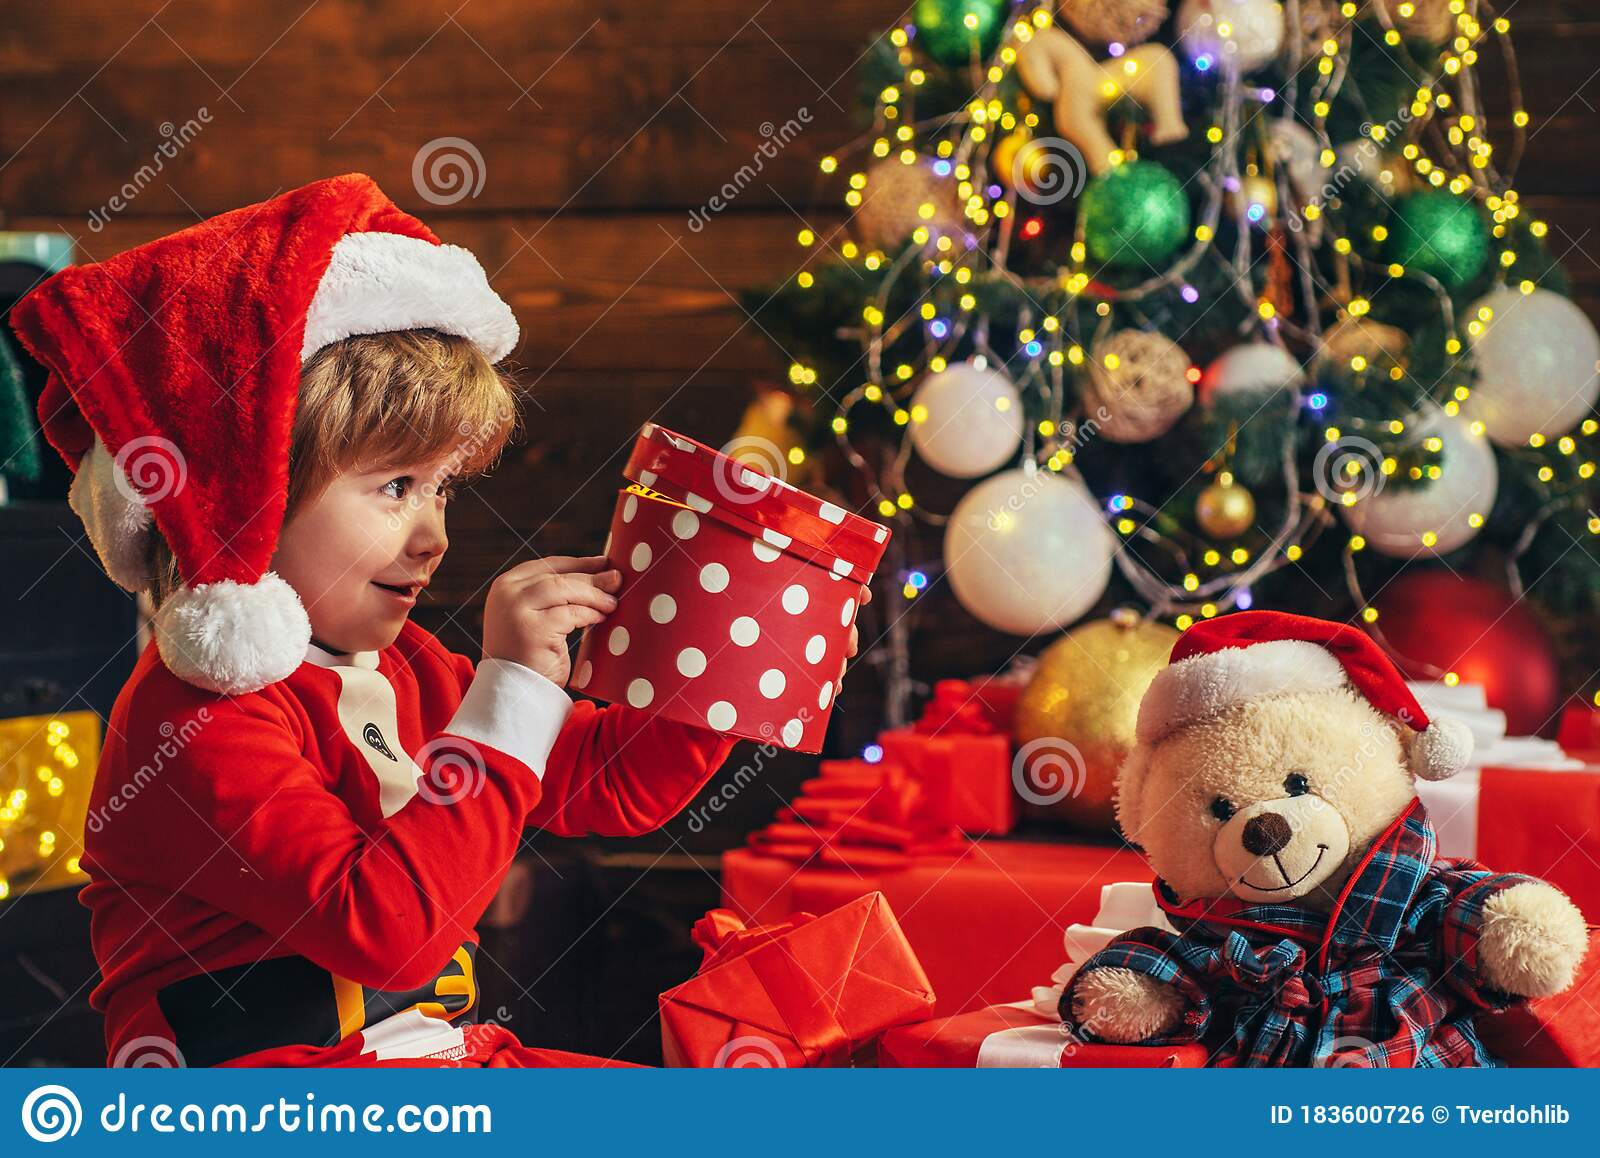 Happy Child With Christmas Gift New Year Kids Cheerful Cute Child Opening A Christmas Present Christmas Child Holding Stock Photo Image Of Idea Baby 183600726